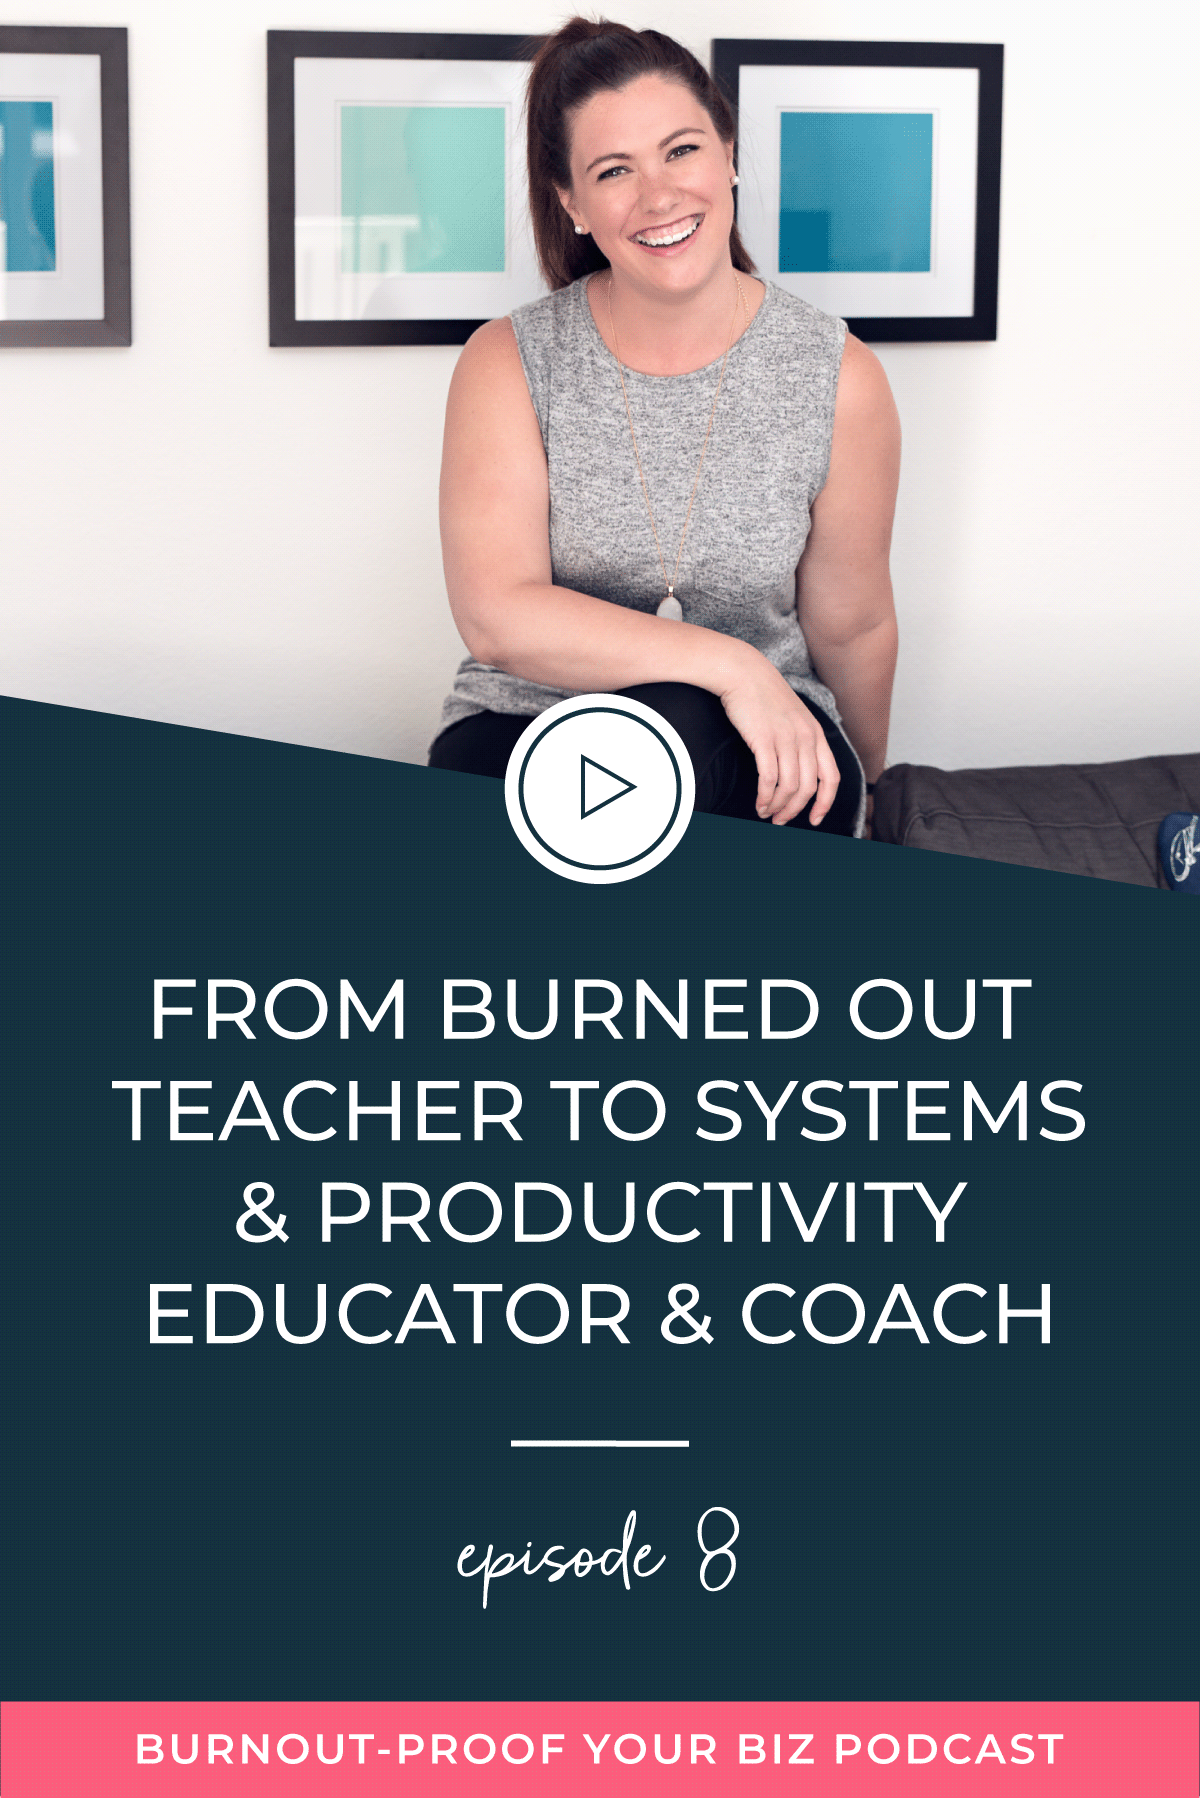 Burnout-Proof Your Biz Podcast with Chelsea B Foster | Episode 008 - From Burned Out Teacher to Systems & Productivity Educator & Coach | Learn how to run your biz and live your dream life on your own terms without the fear of burnout.